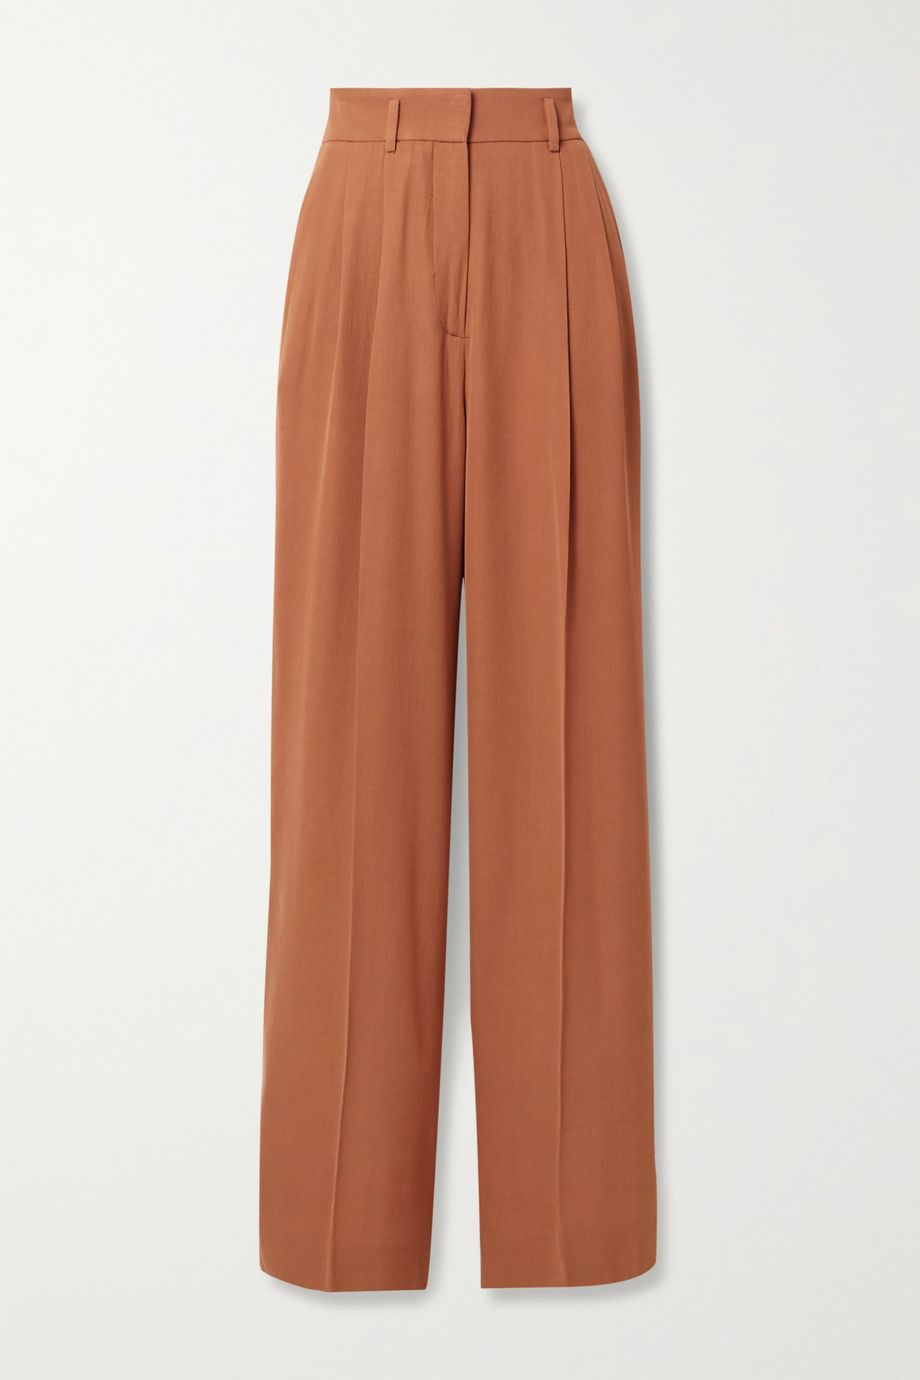 Petar Petrov Hector wool-blend wide-leg pants